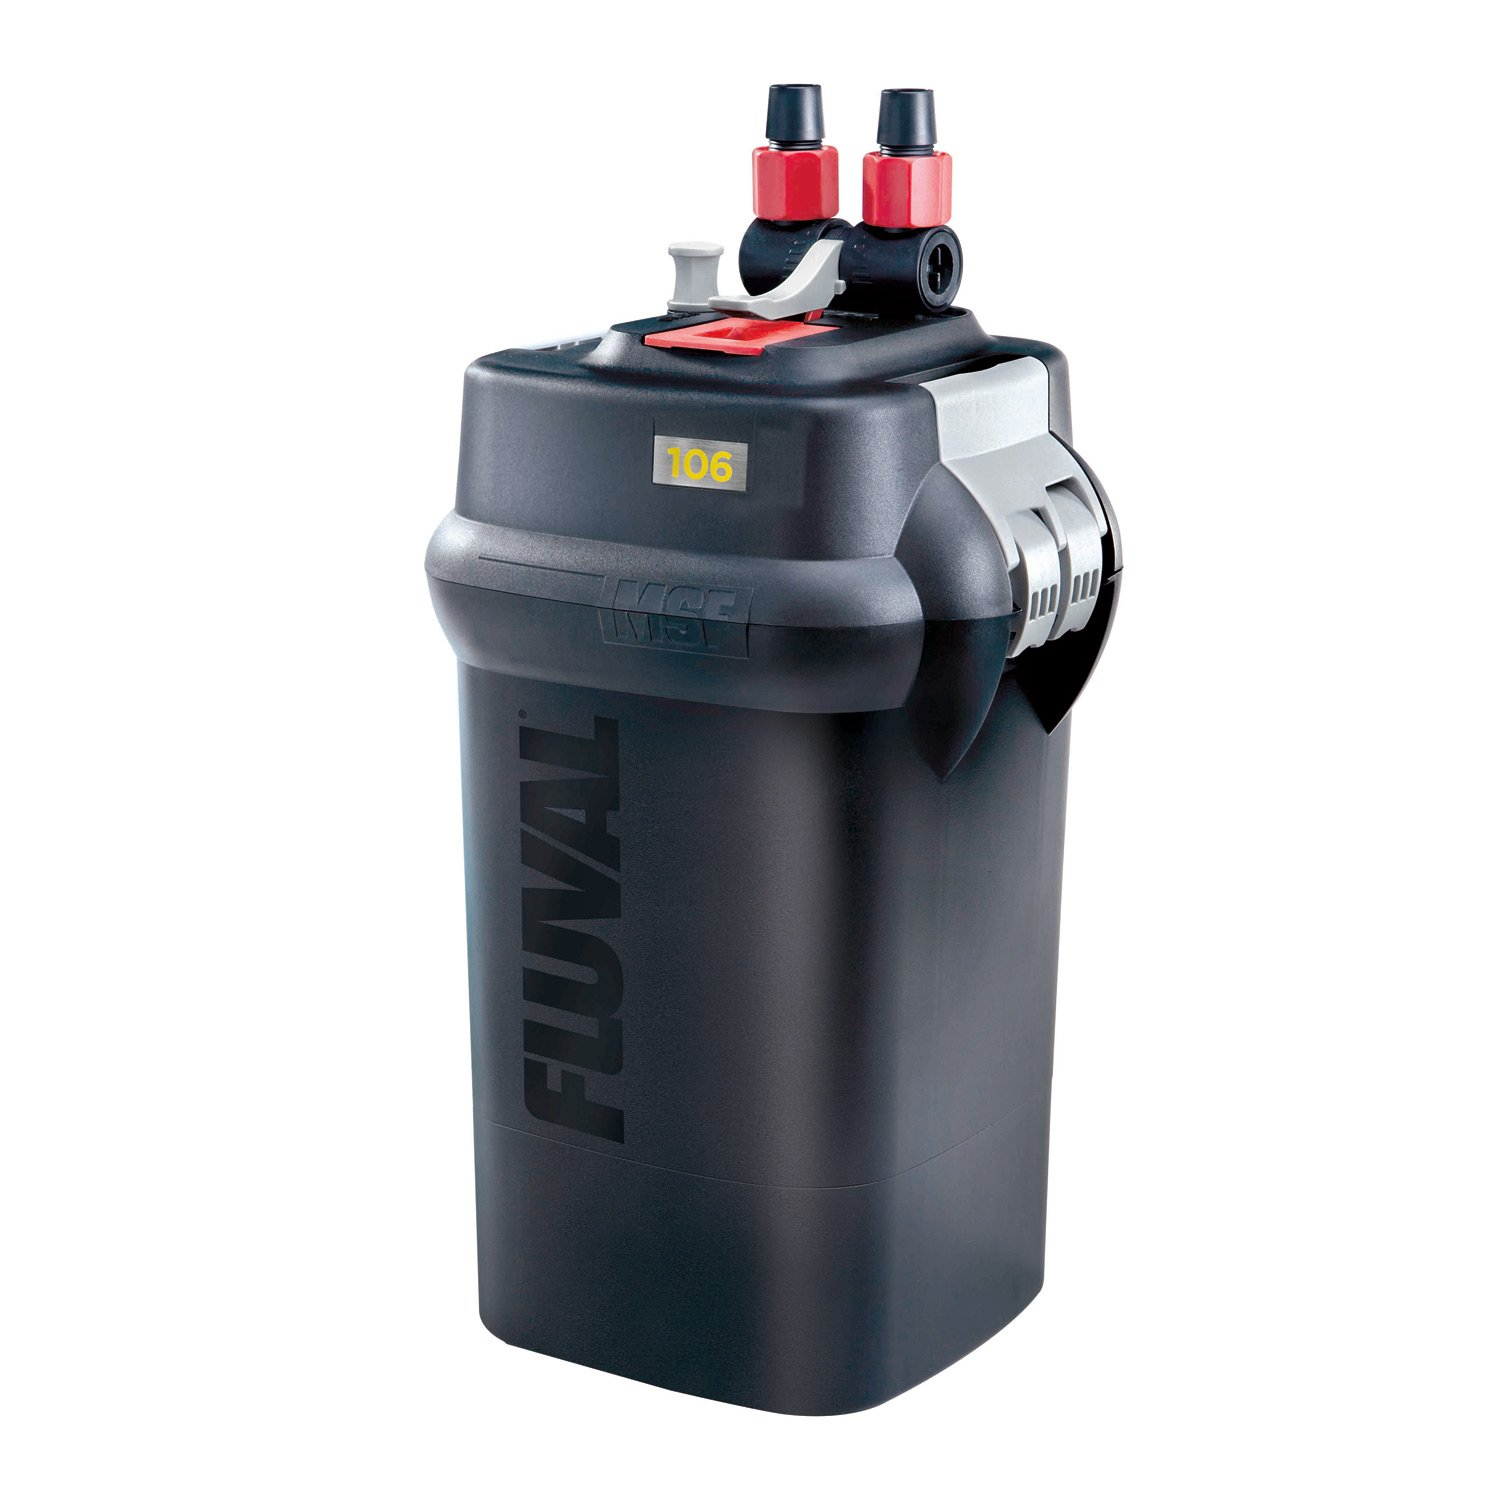 Fluval 106 external canister filters petco for Petco fish filters